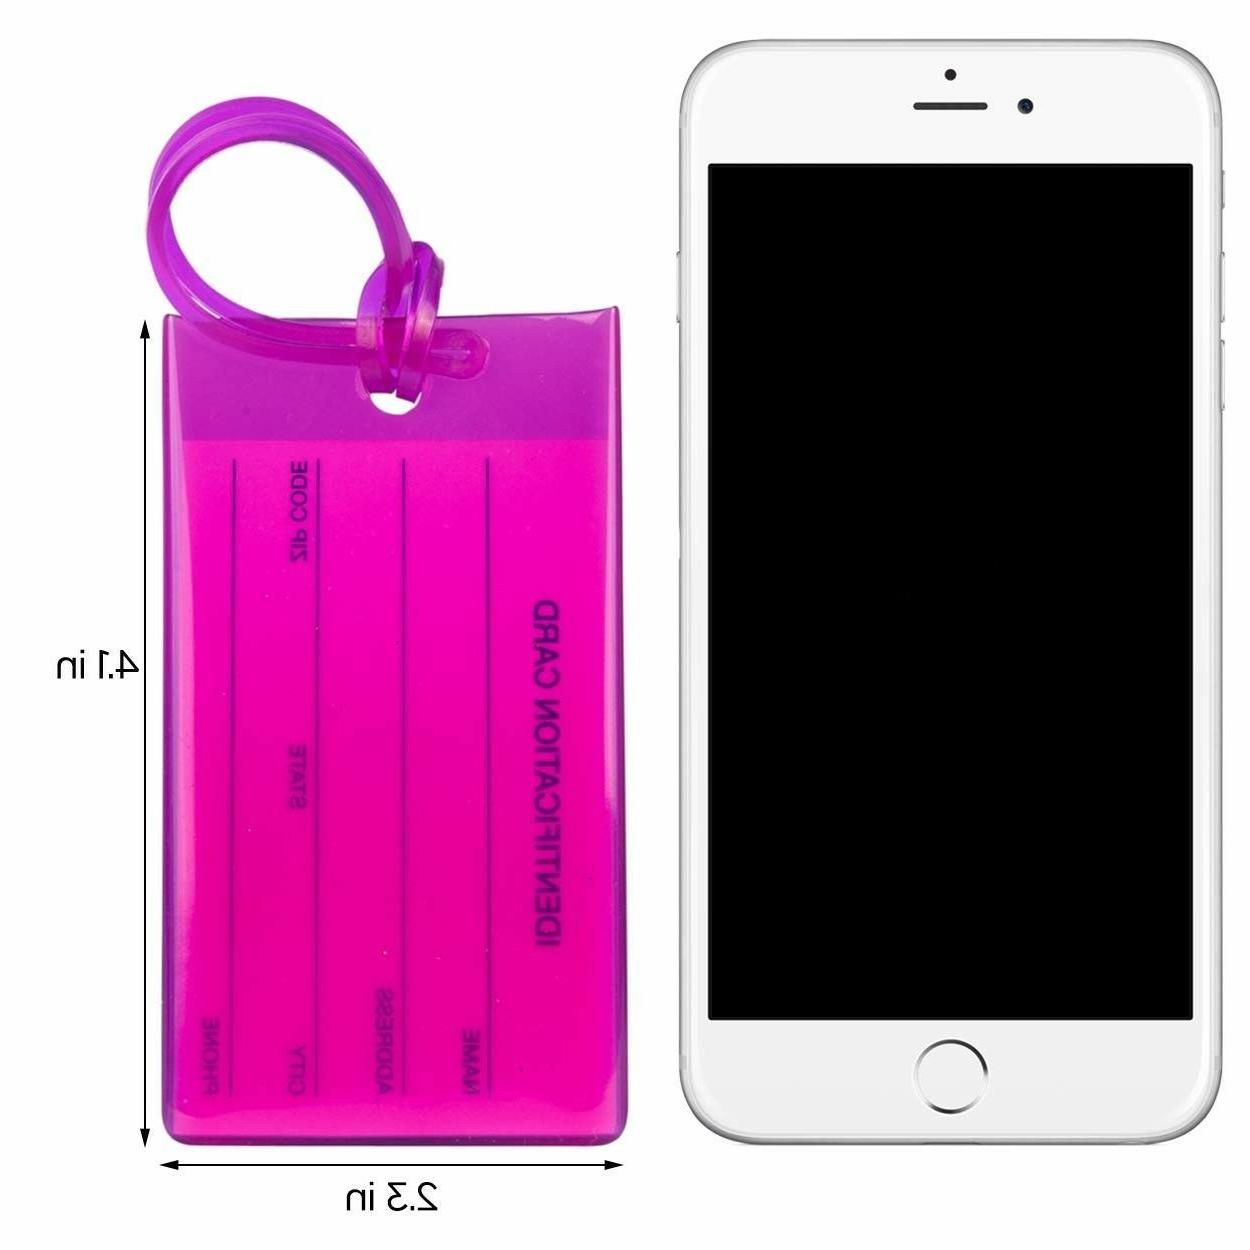 TravelMore Luggage Tags For Suitcases, Silicone Travel ID 7